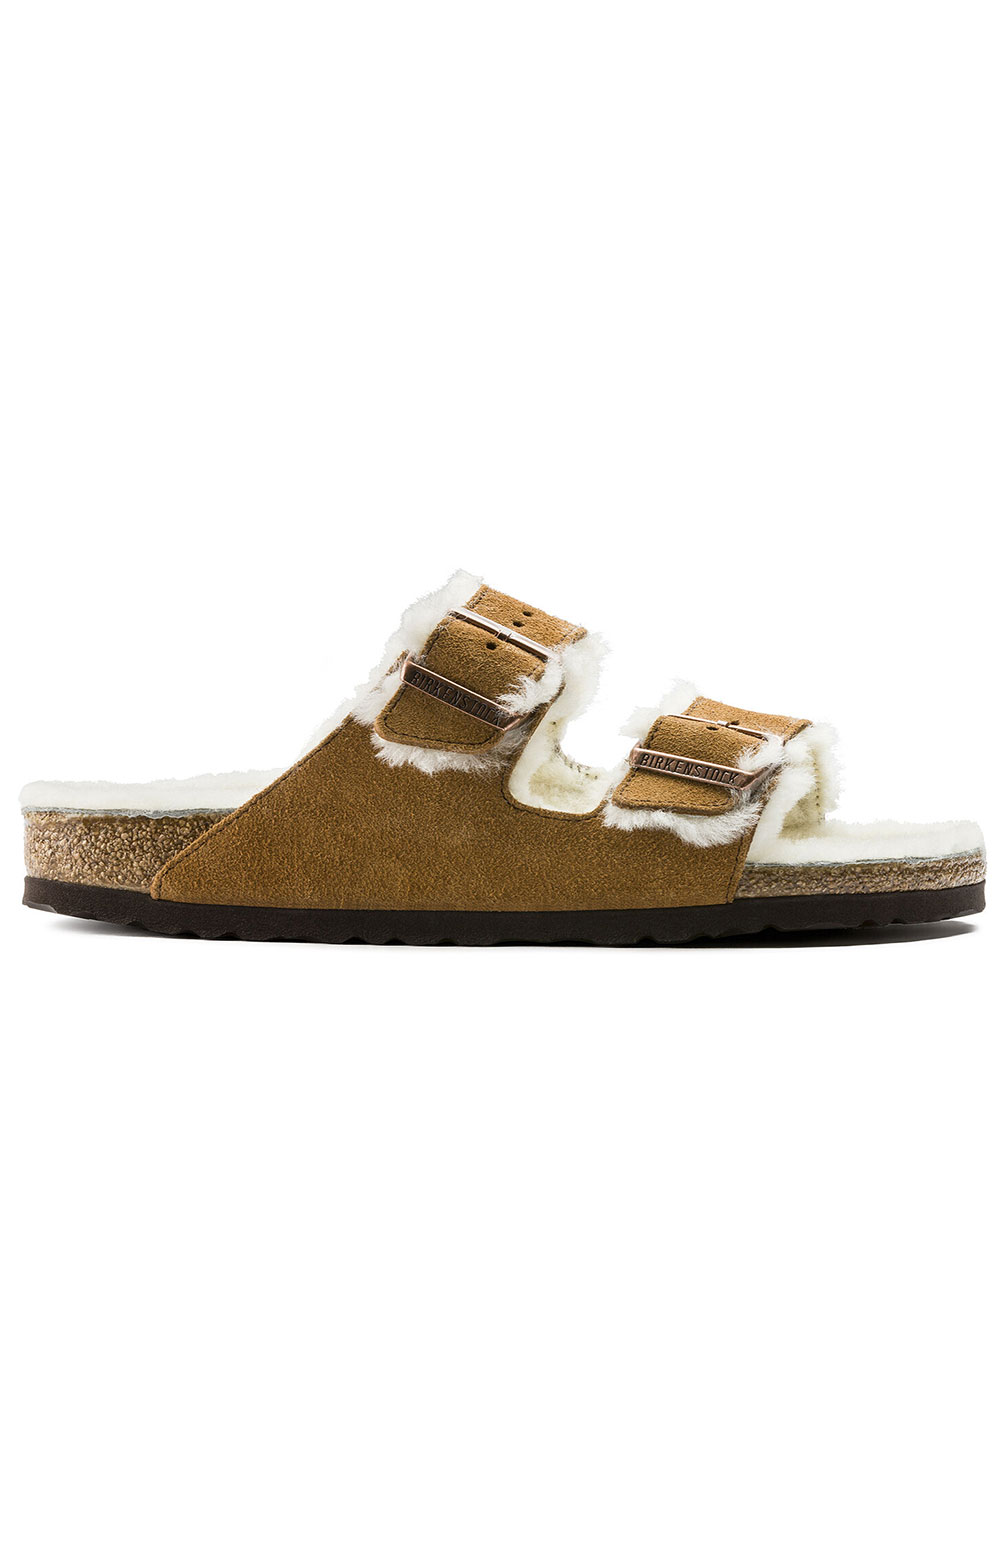 (1001128) Arizona Shearling Sandals - Mink 4